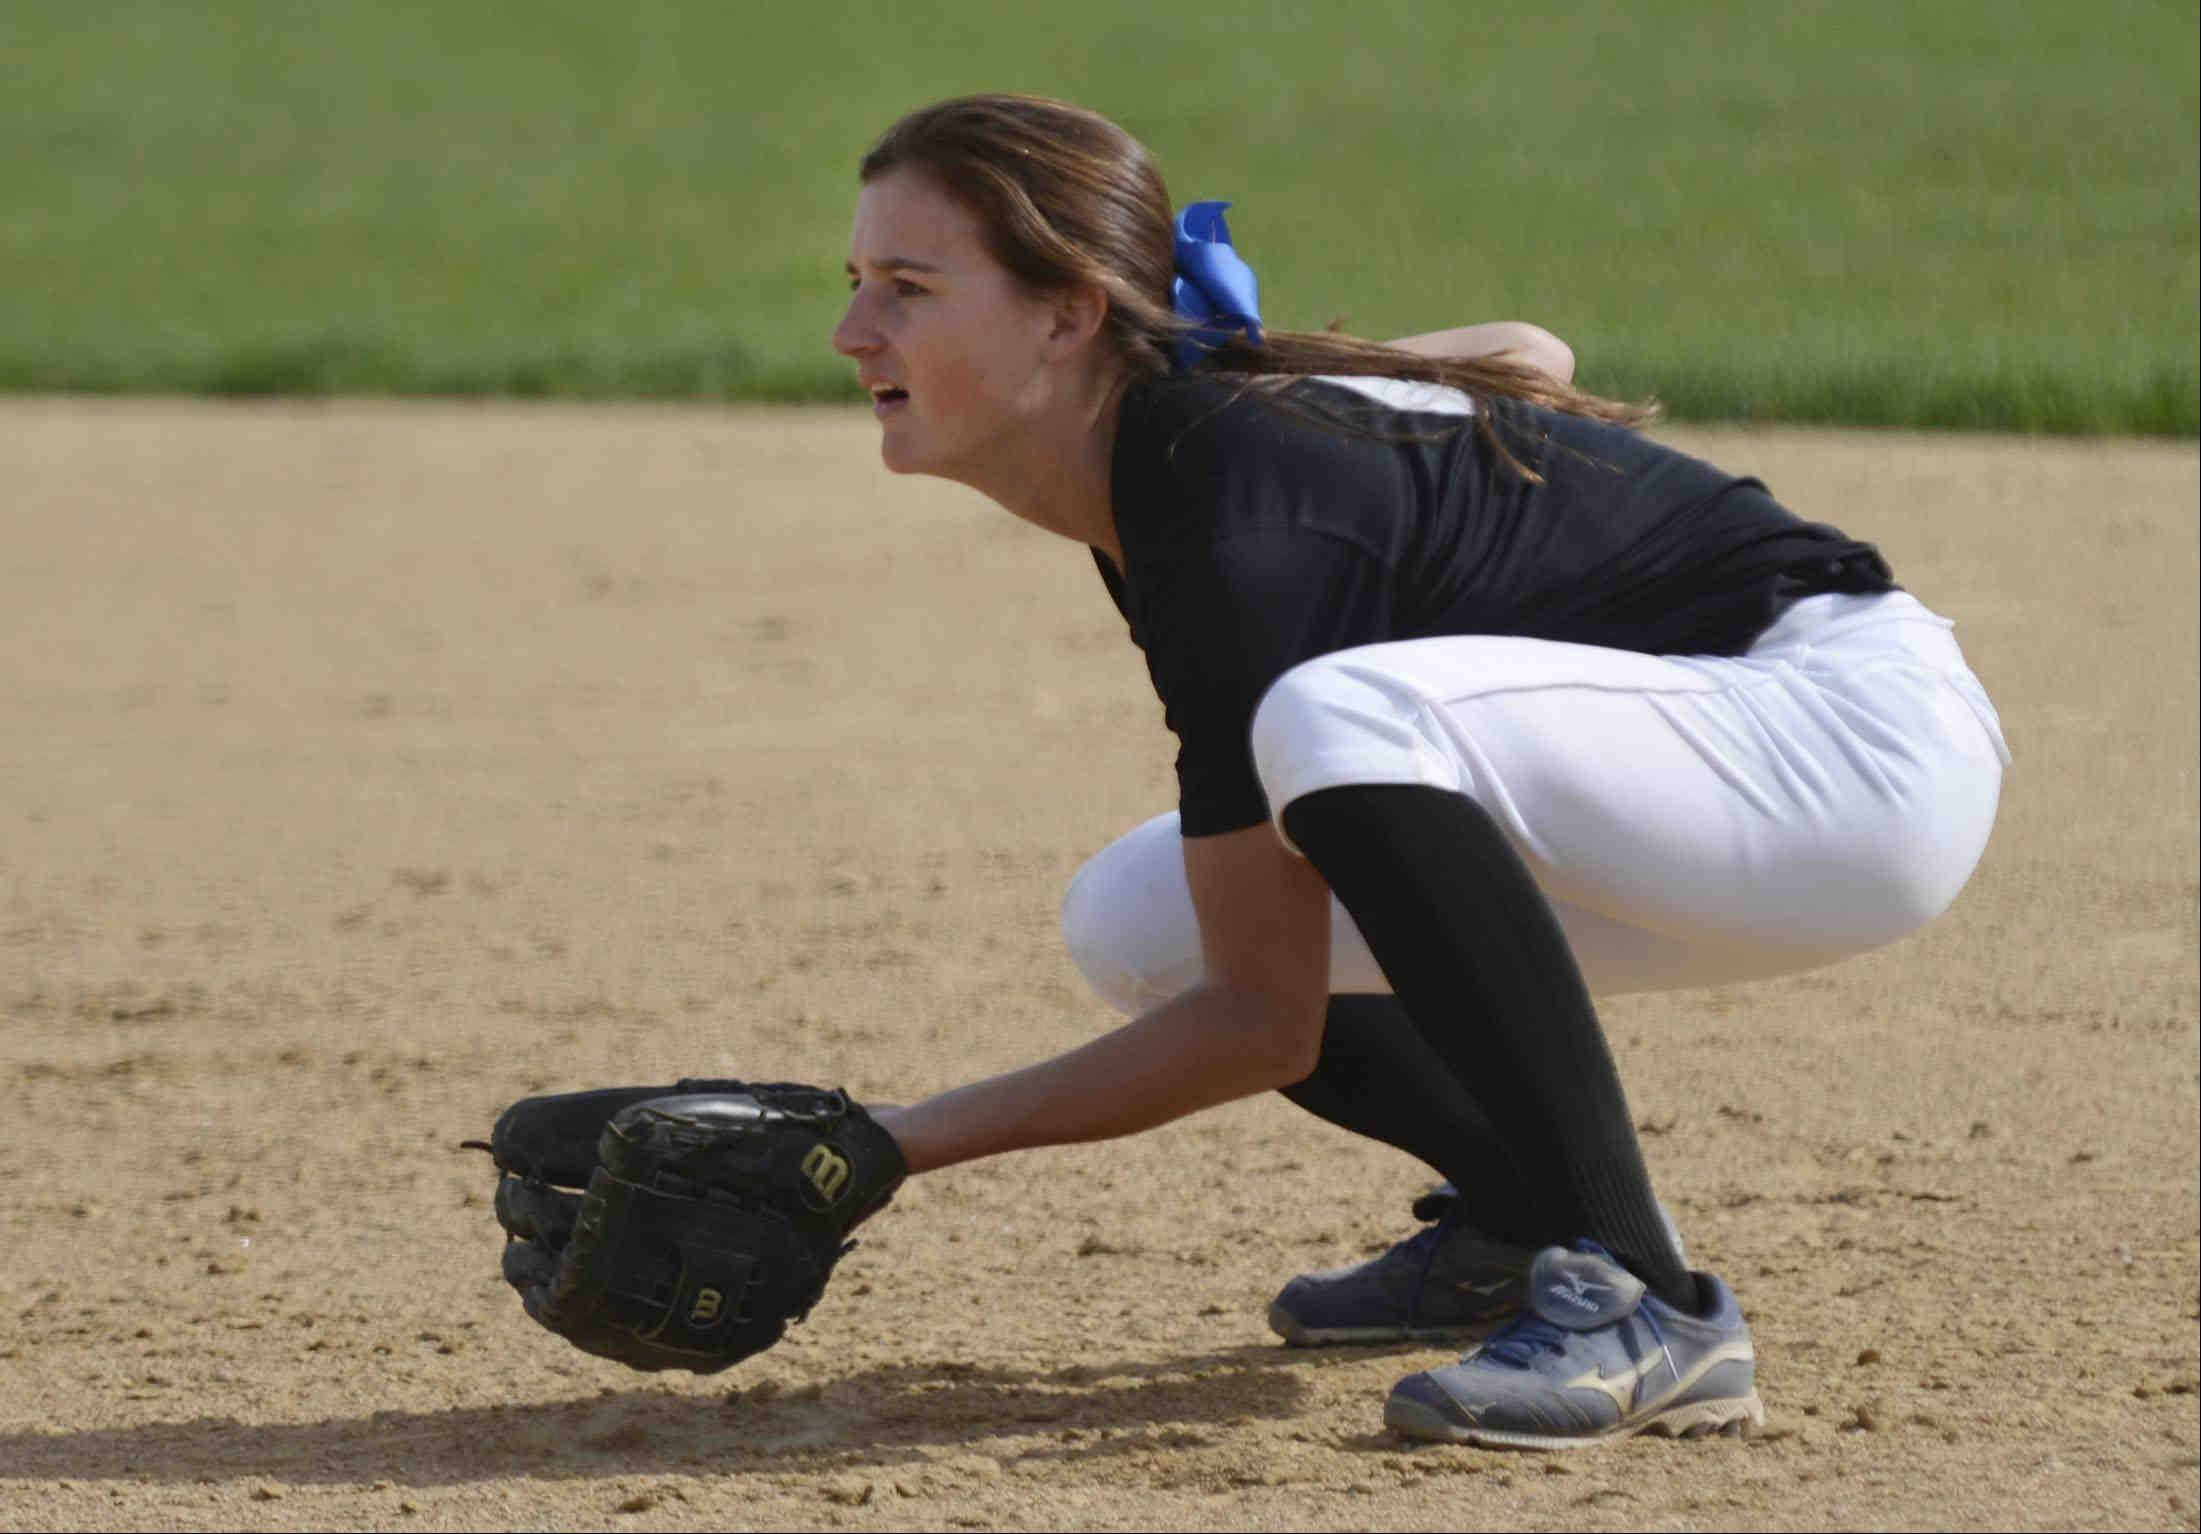 St. Charles North second baseman Kaitlyn Waslawski gets in position as a pitch is delivered against St. Charles East Monday.